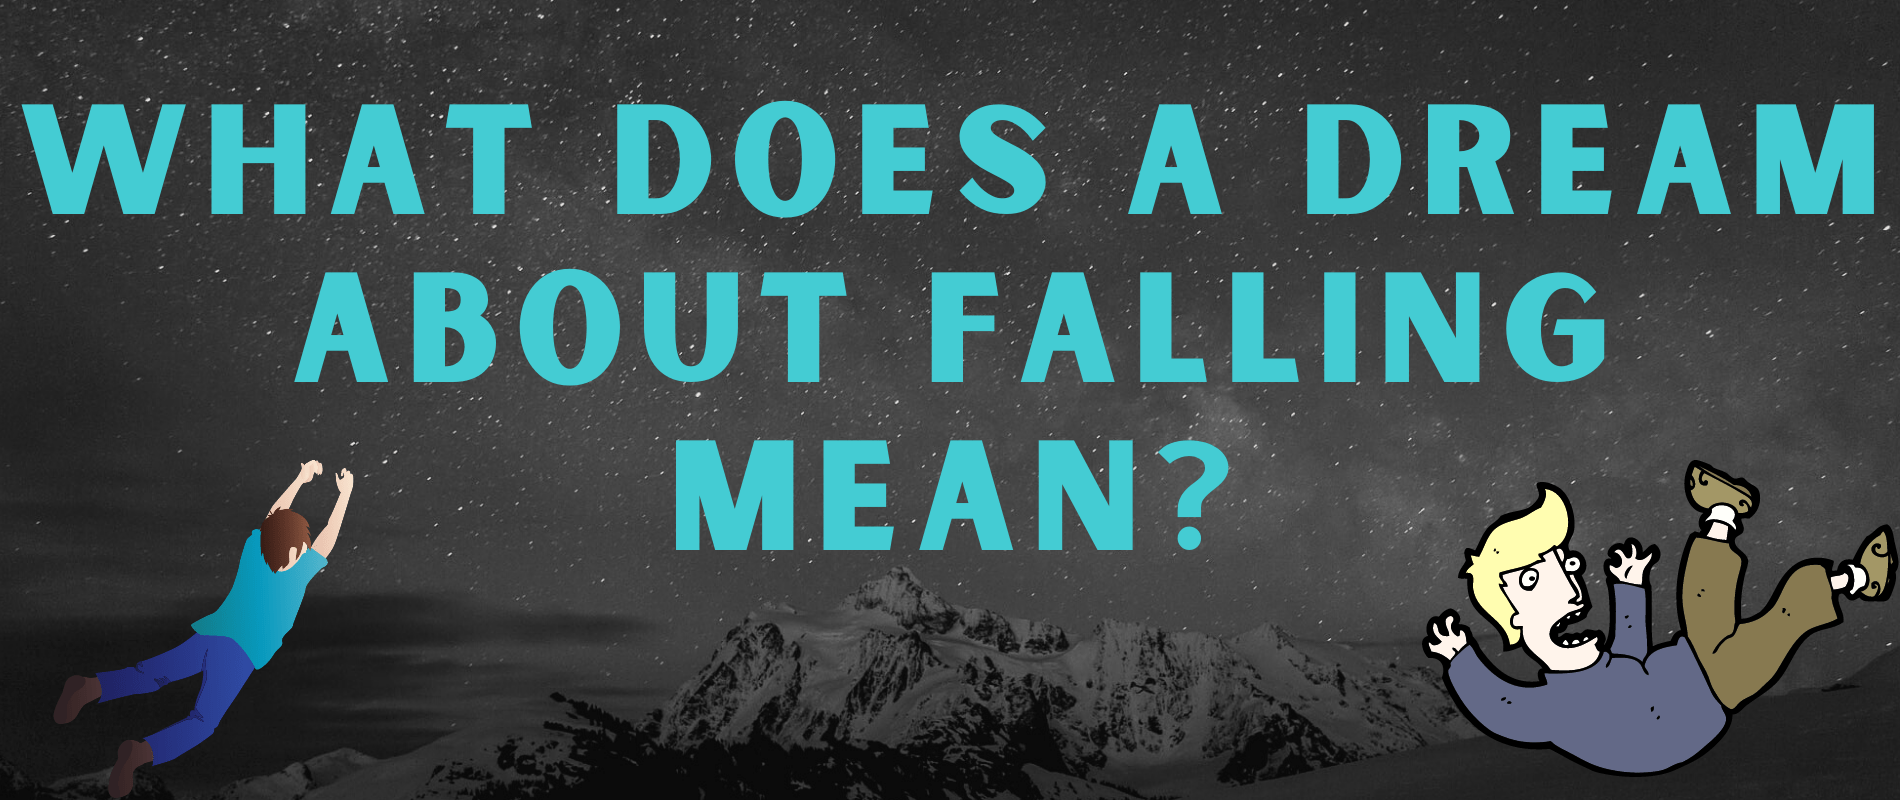 what does a dream about falling mean